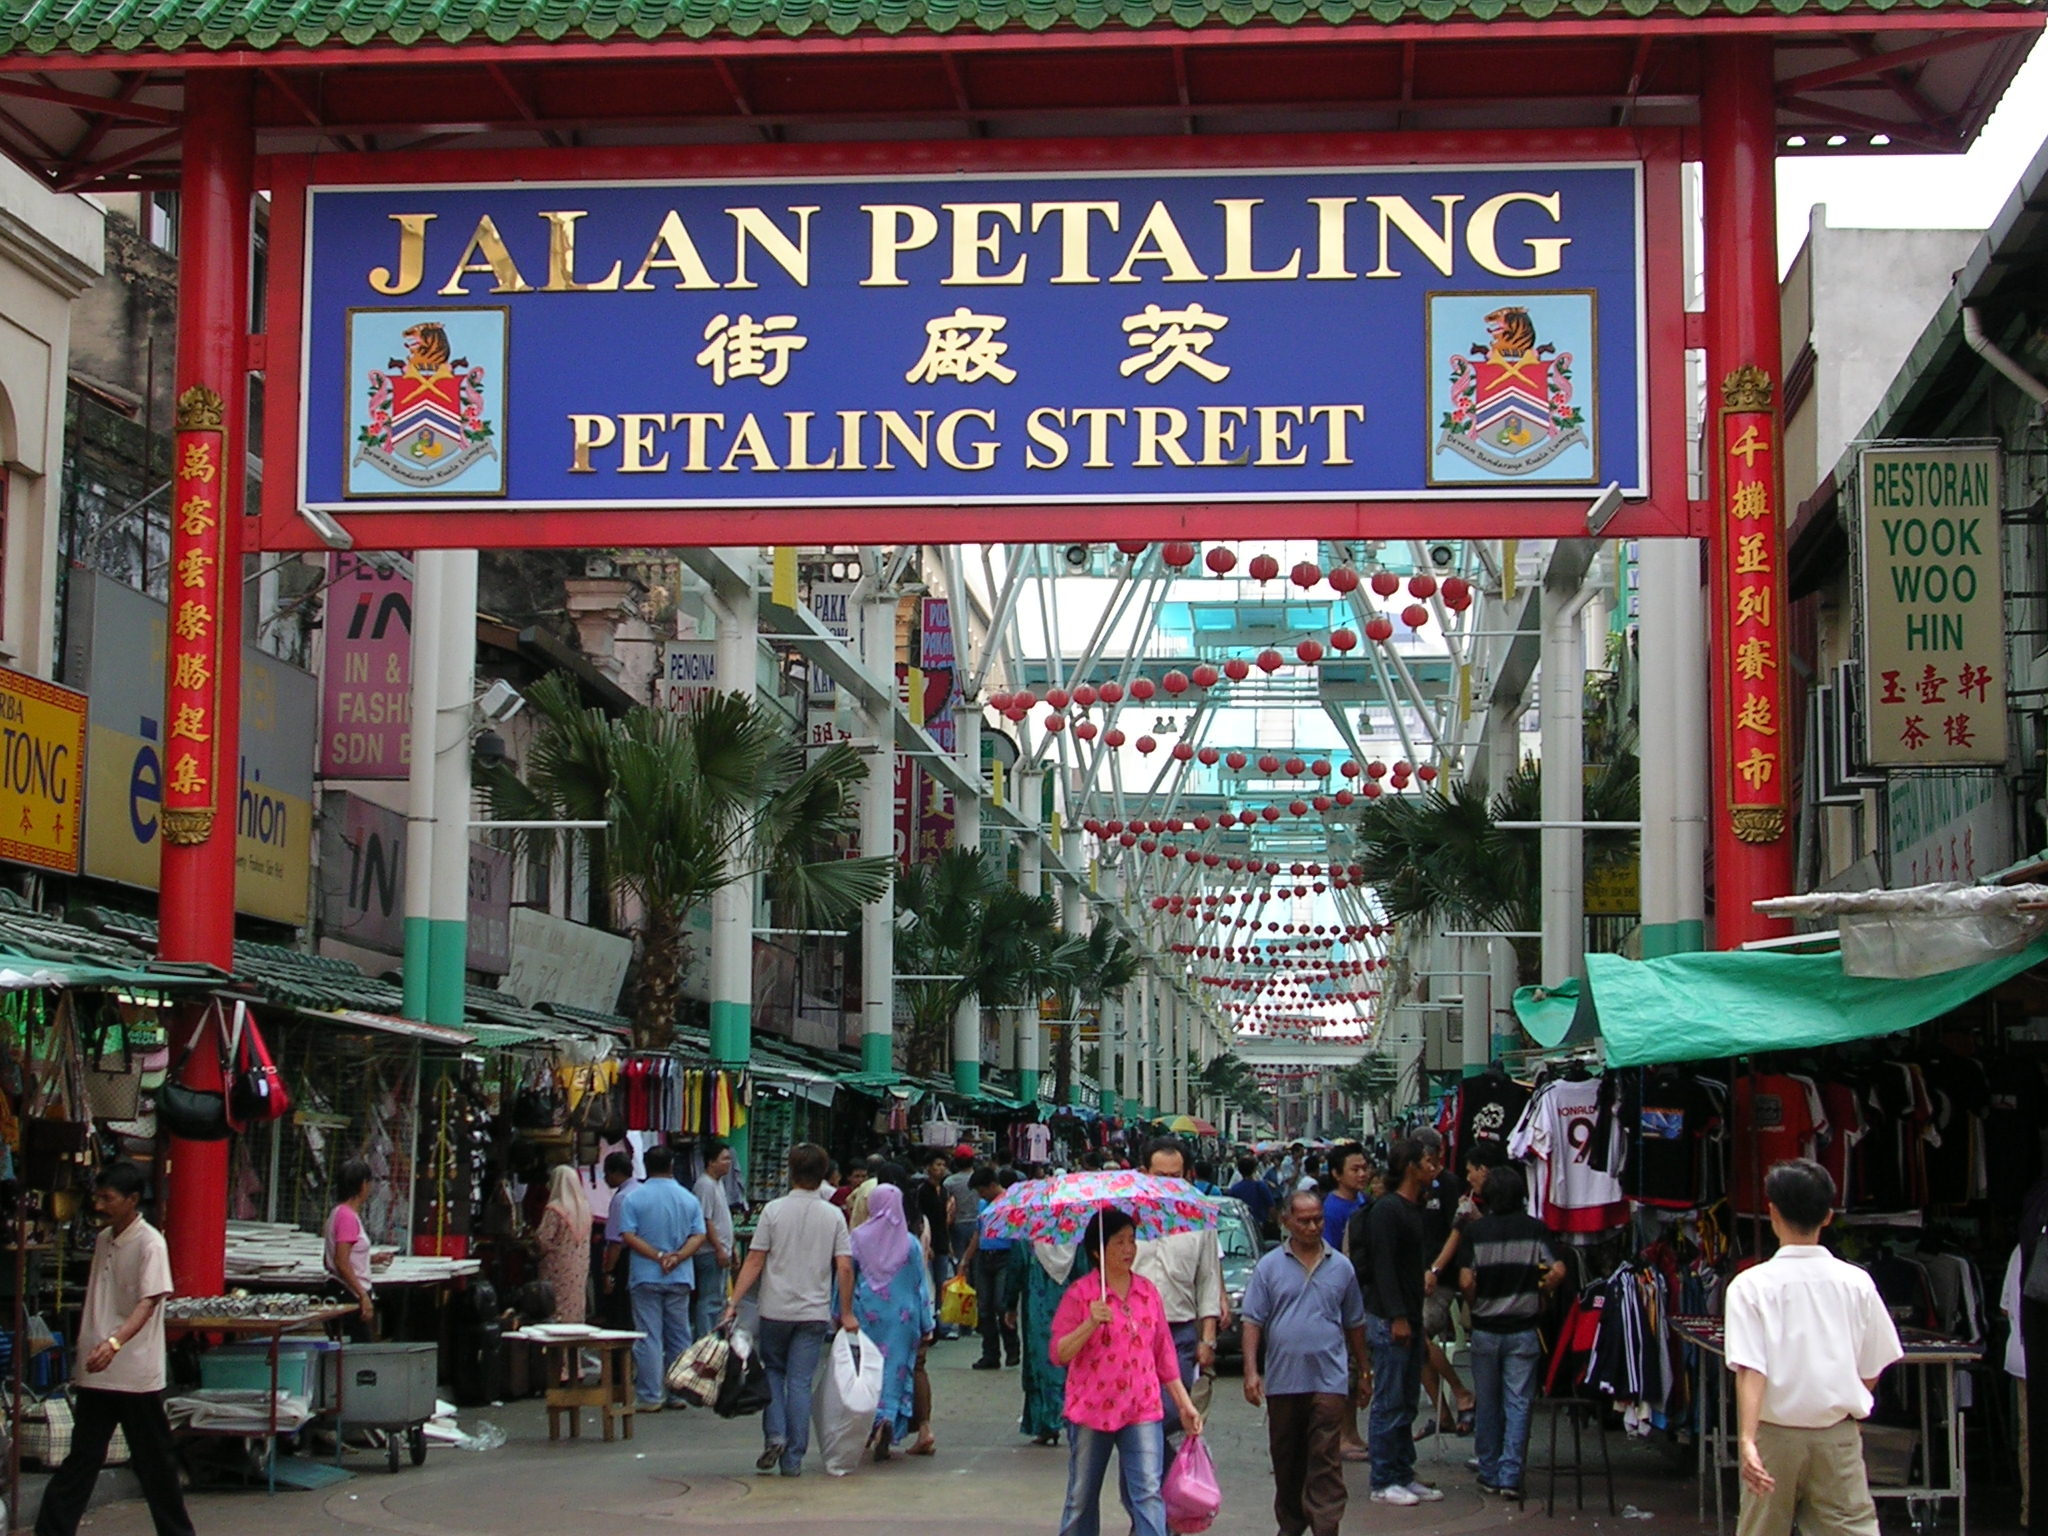 Image from Attractions in Malaysia